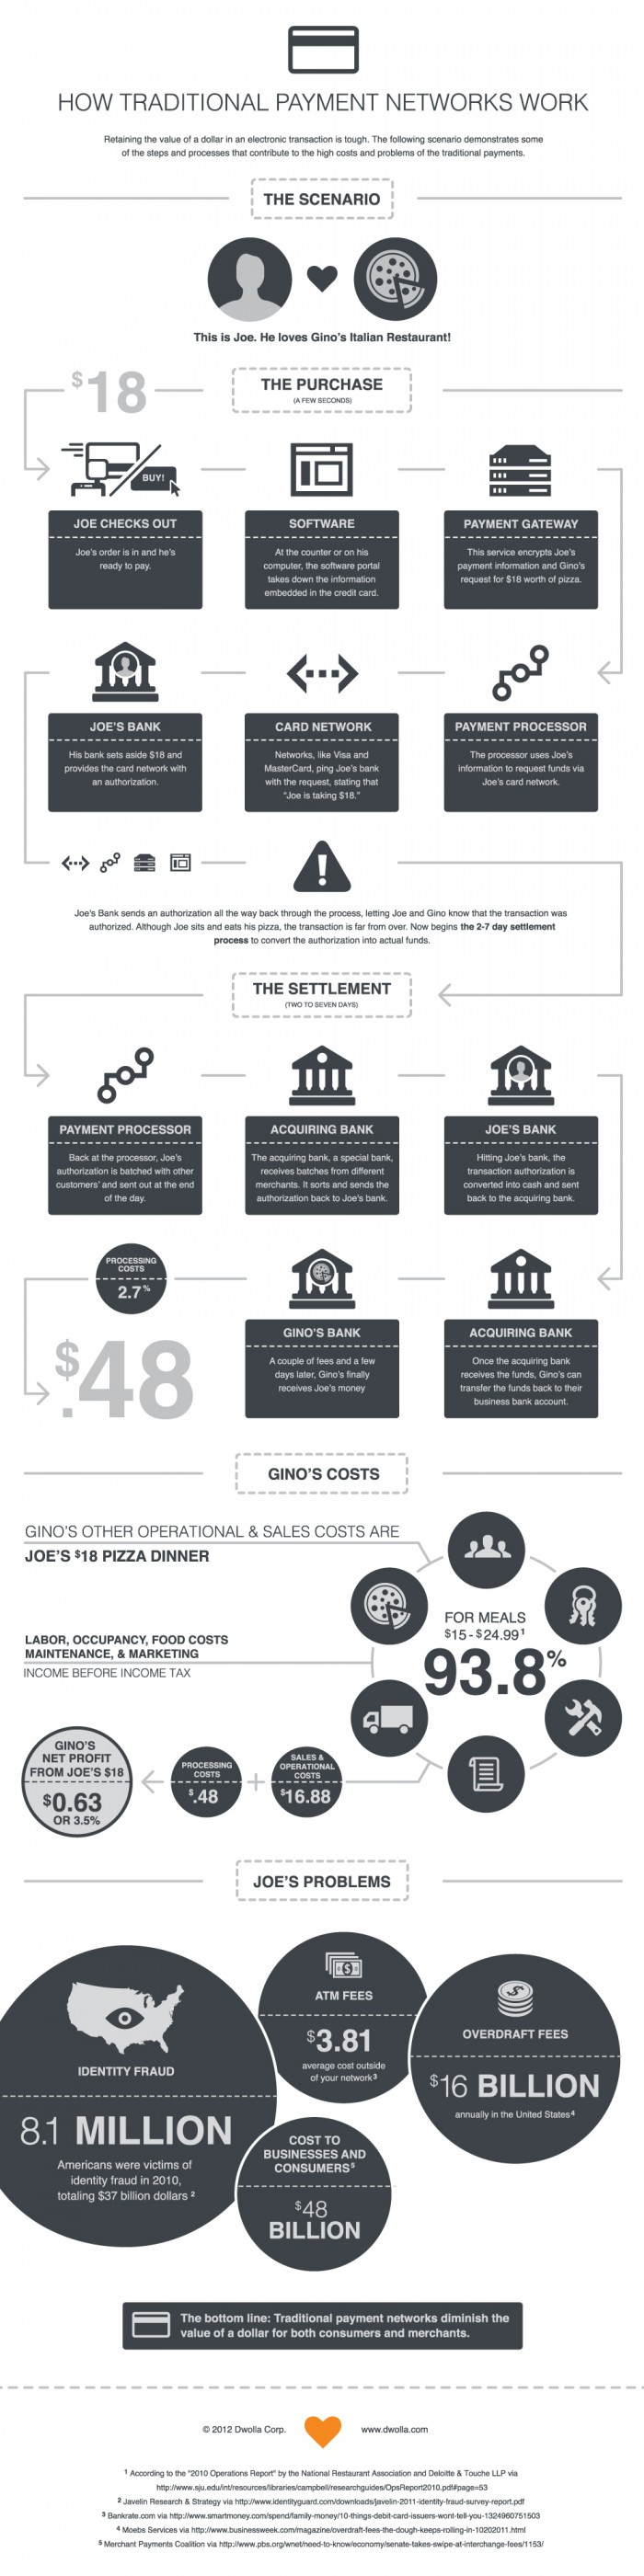 How traditional payments work